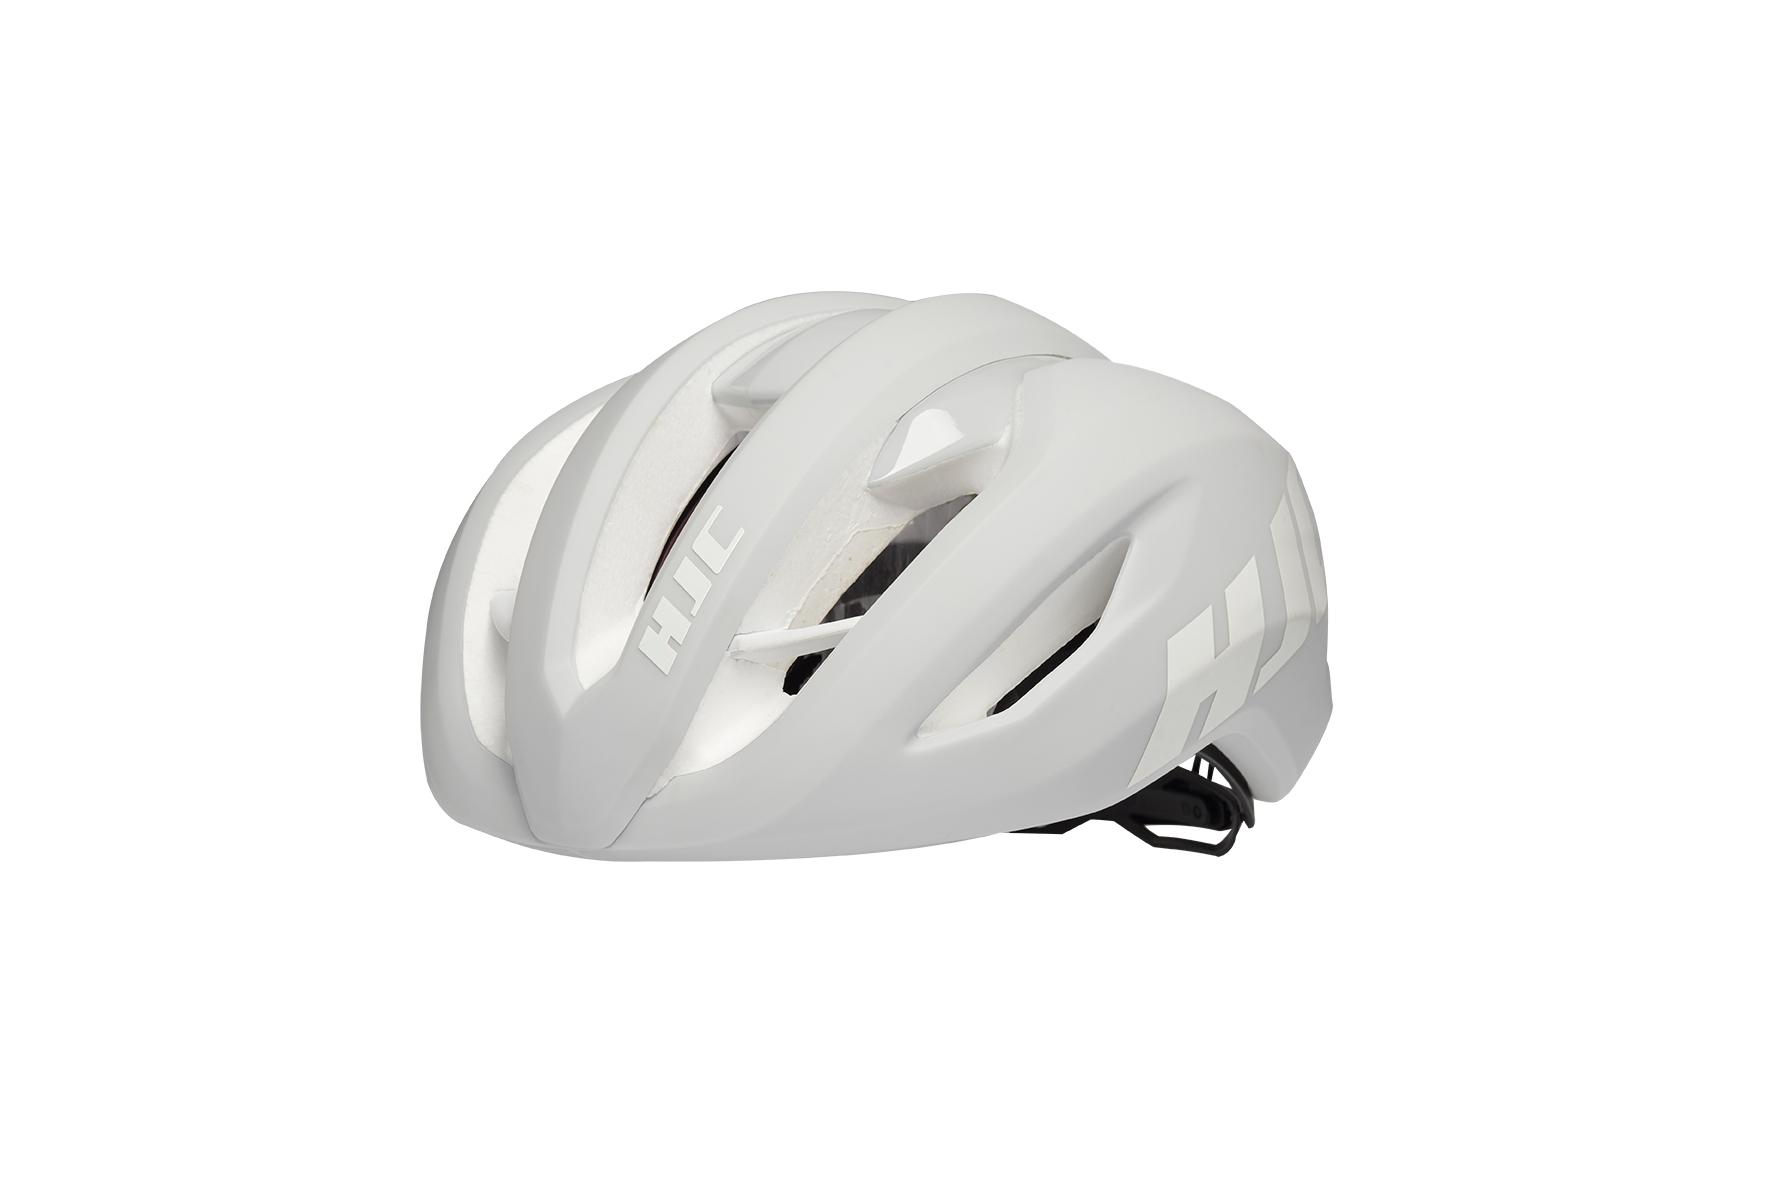 HCJ VALECO Matt Gloss White - Fietshelm Wit